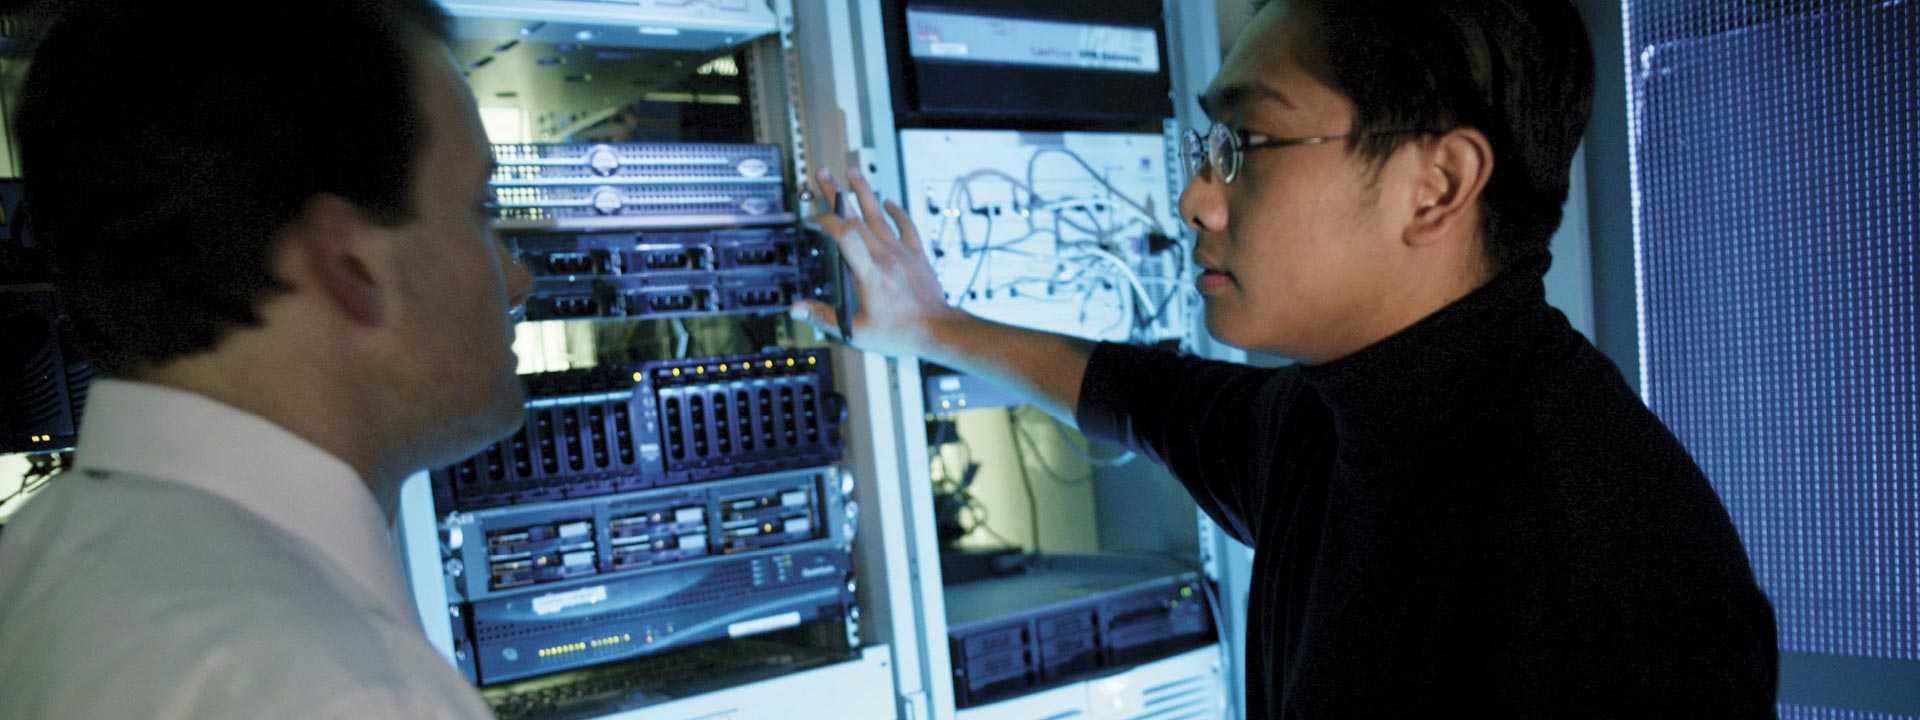 Computer Systems Networking and Telecommunications